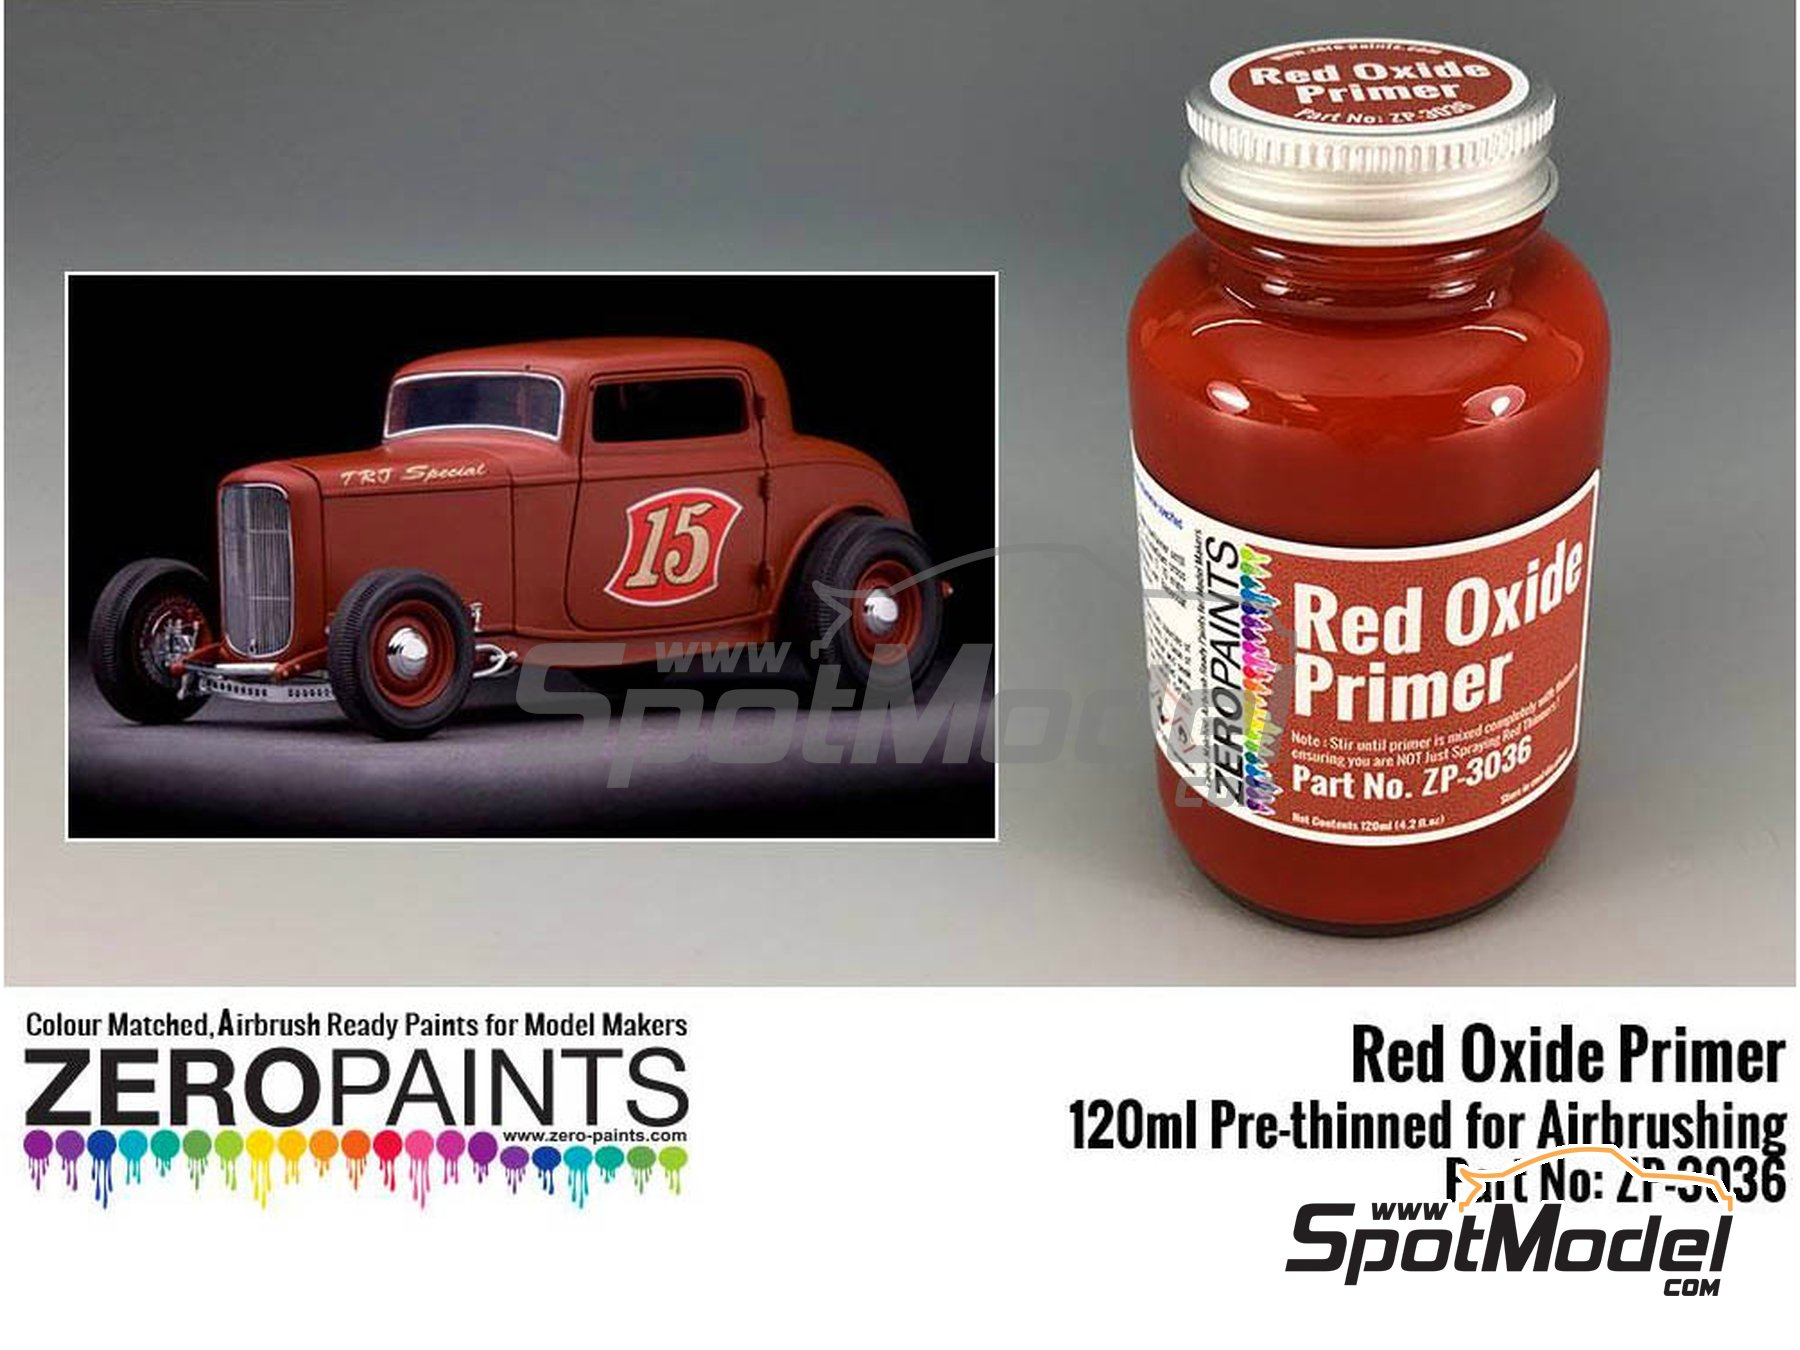 Image 1: Red oxide | Primer manufactured by Zero Paints (ref. ZP-3036)